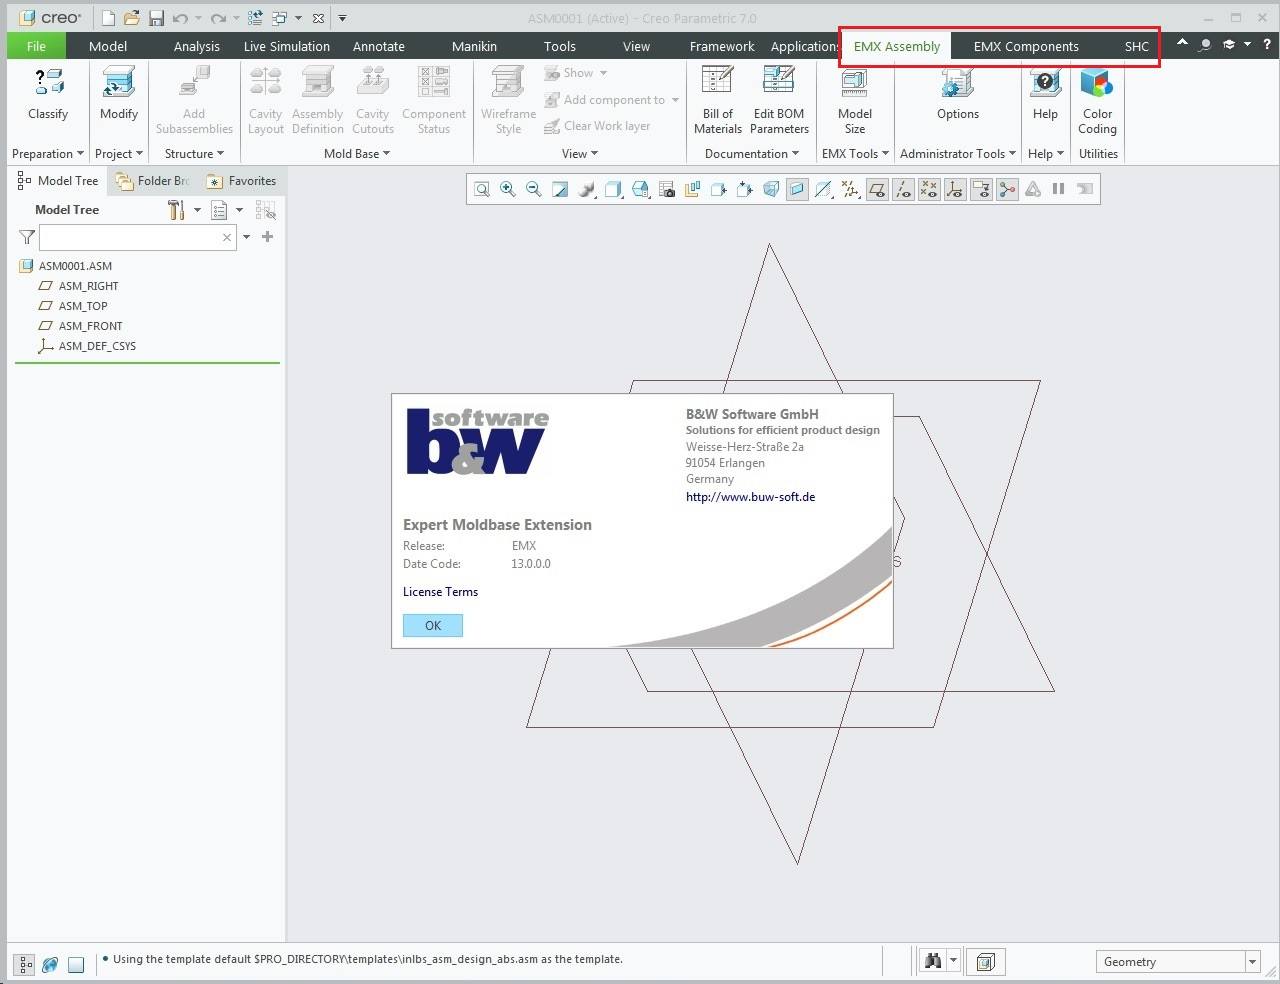 Working with PTC Creo EMX 13.0.0.0 for Creo 7.0 full license